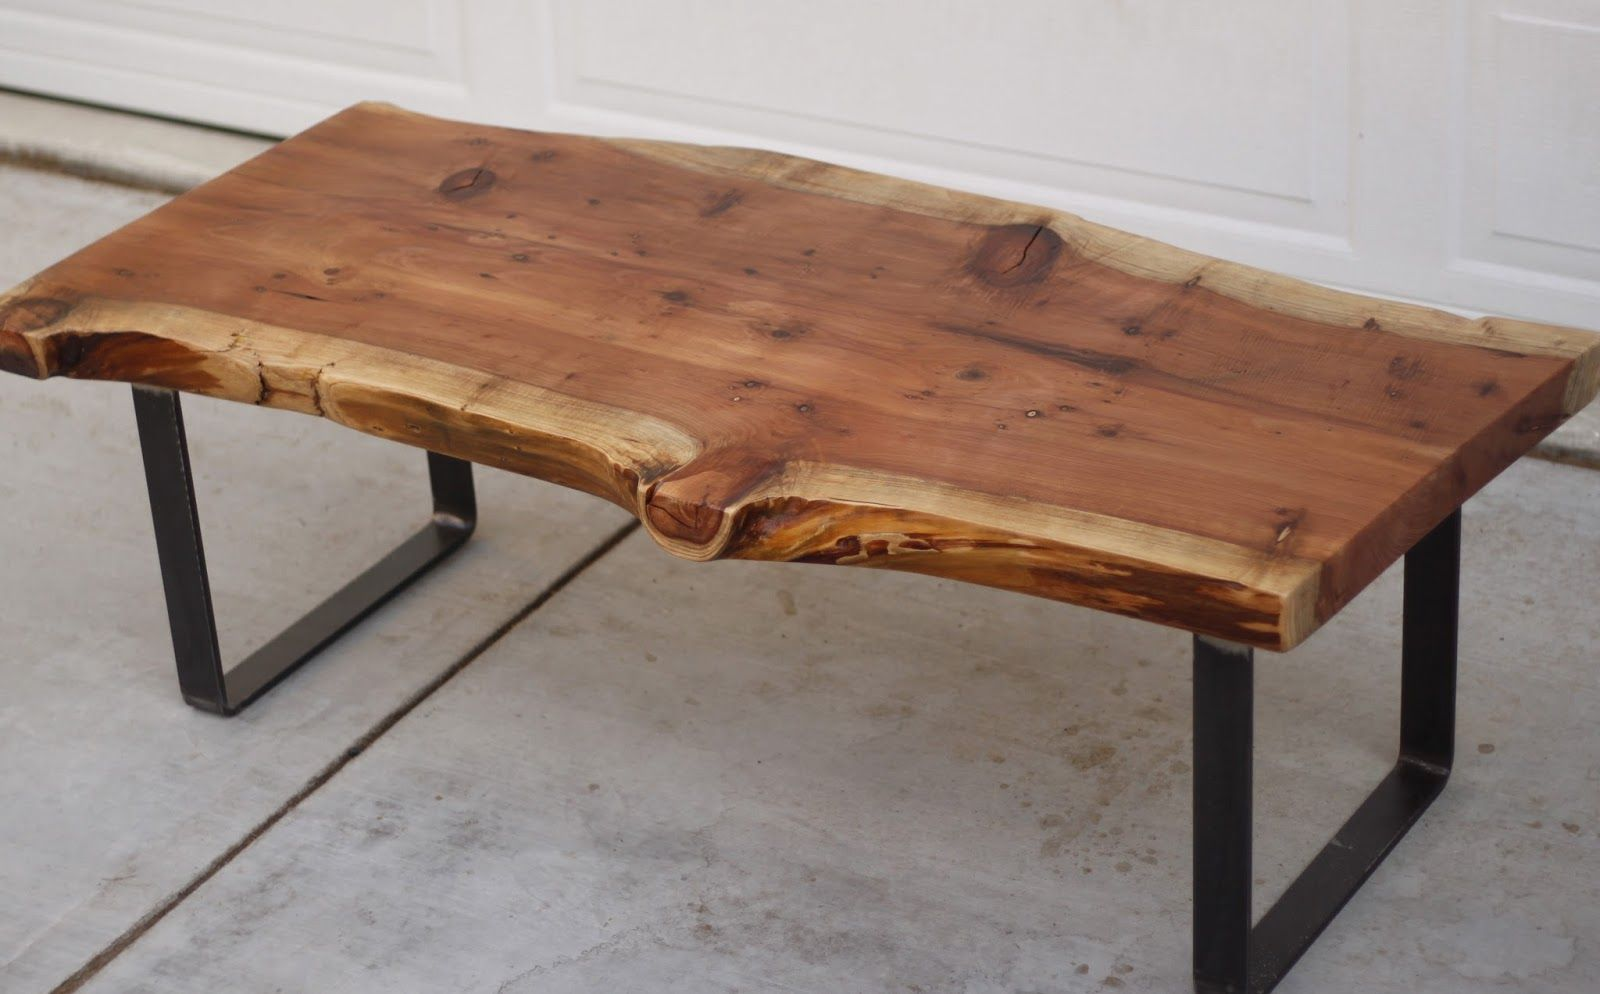 Arbor Exchange | Reclaimed Wood Furniture: Redwood Slab Coffee Table